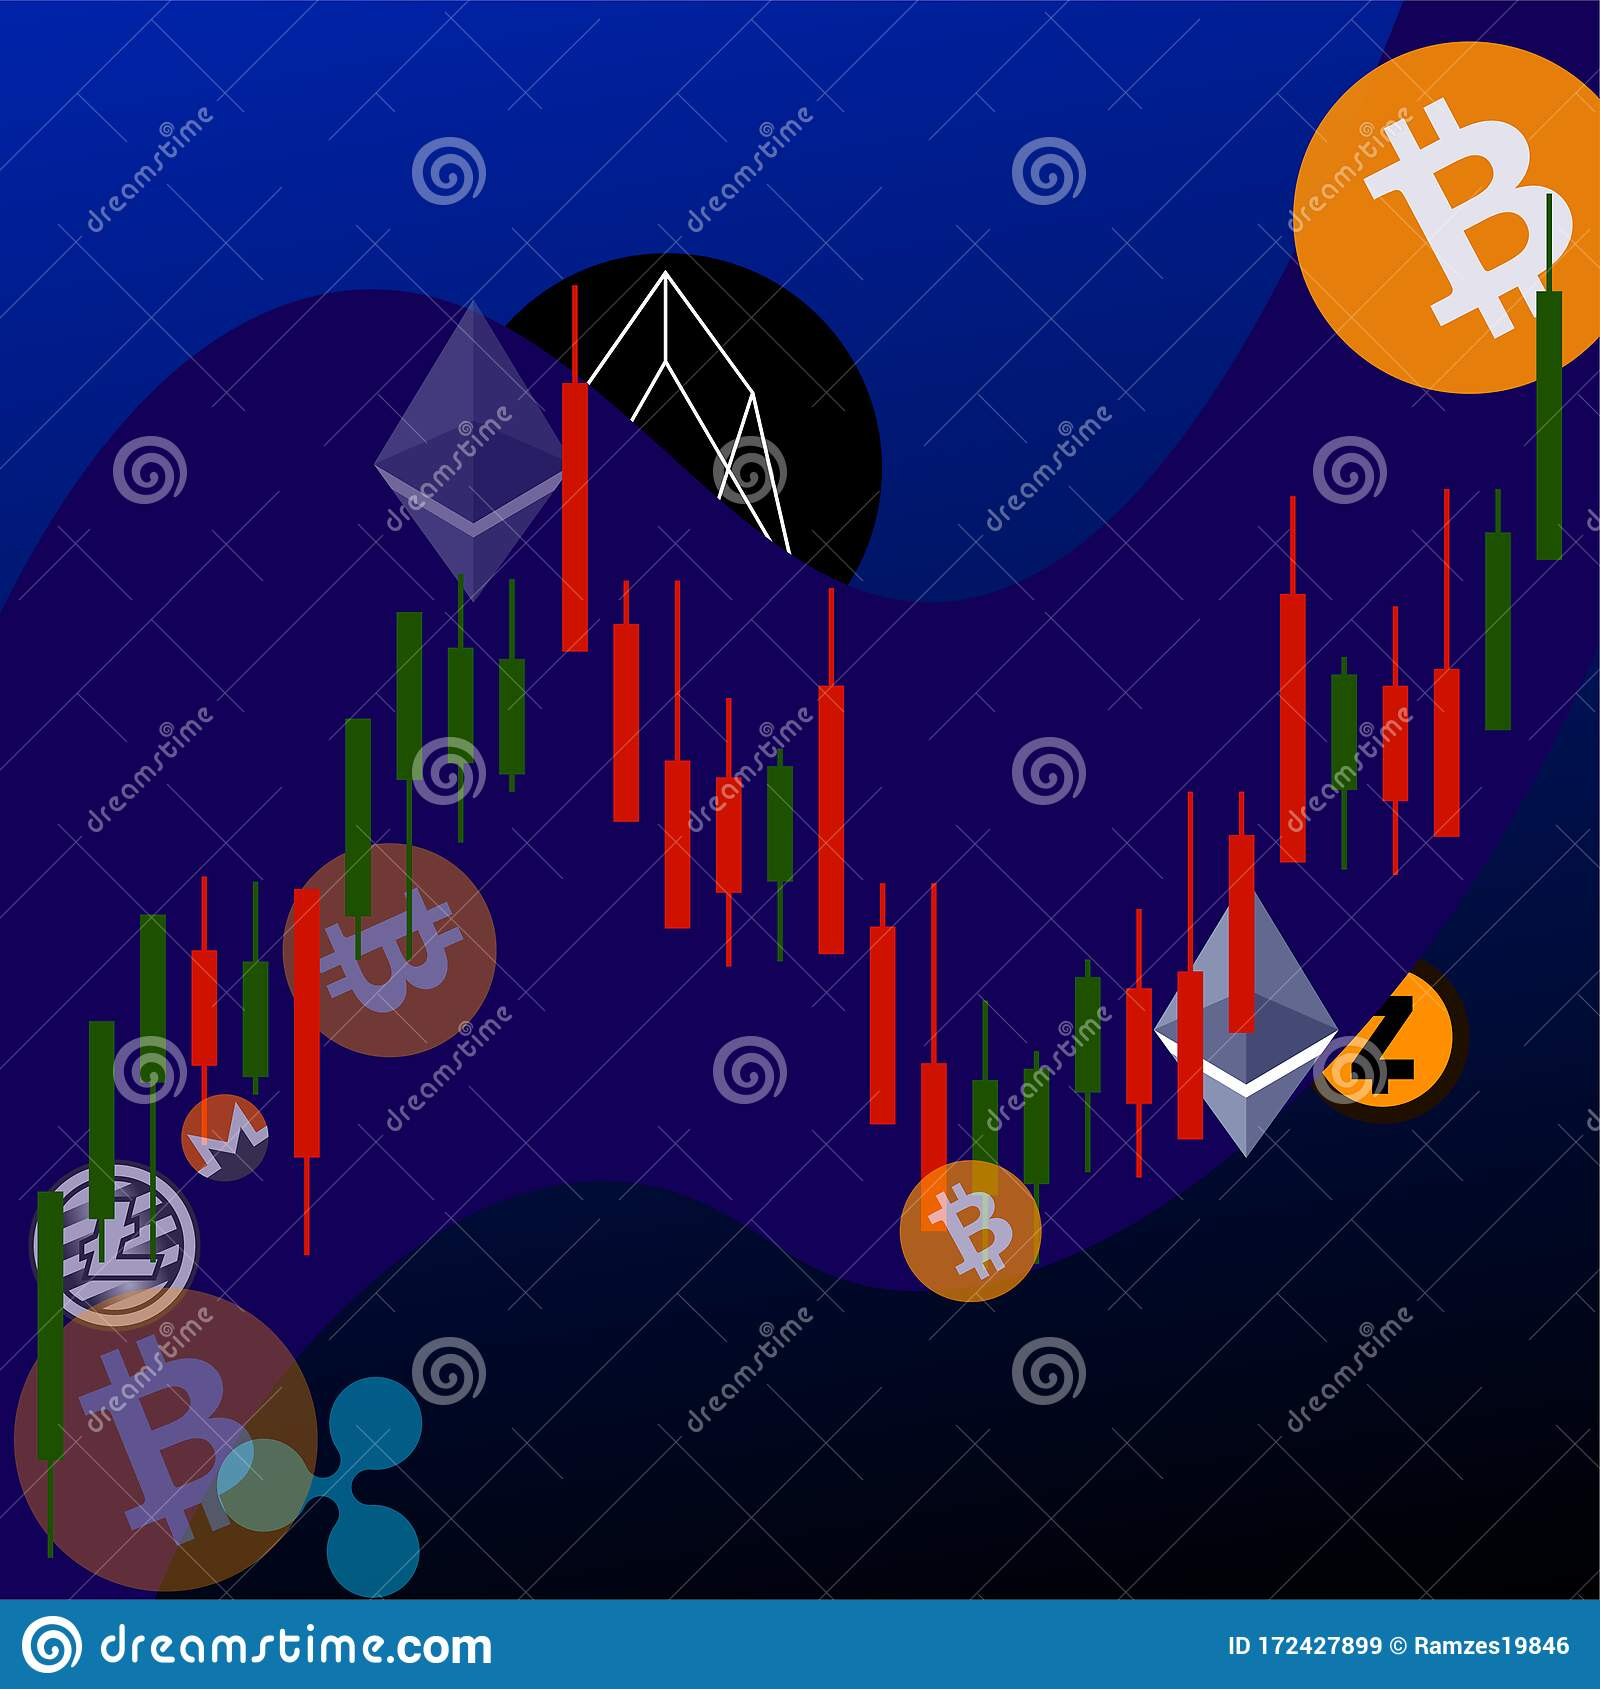 top 10 cryptocurrency stocks